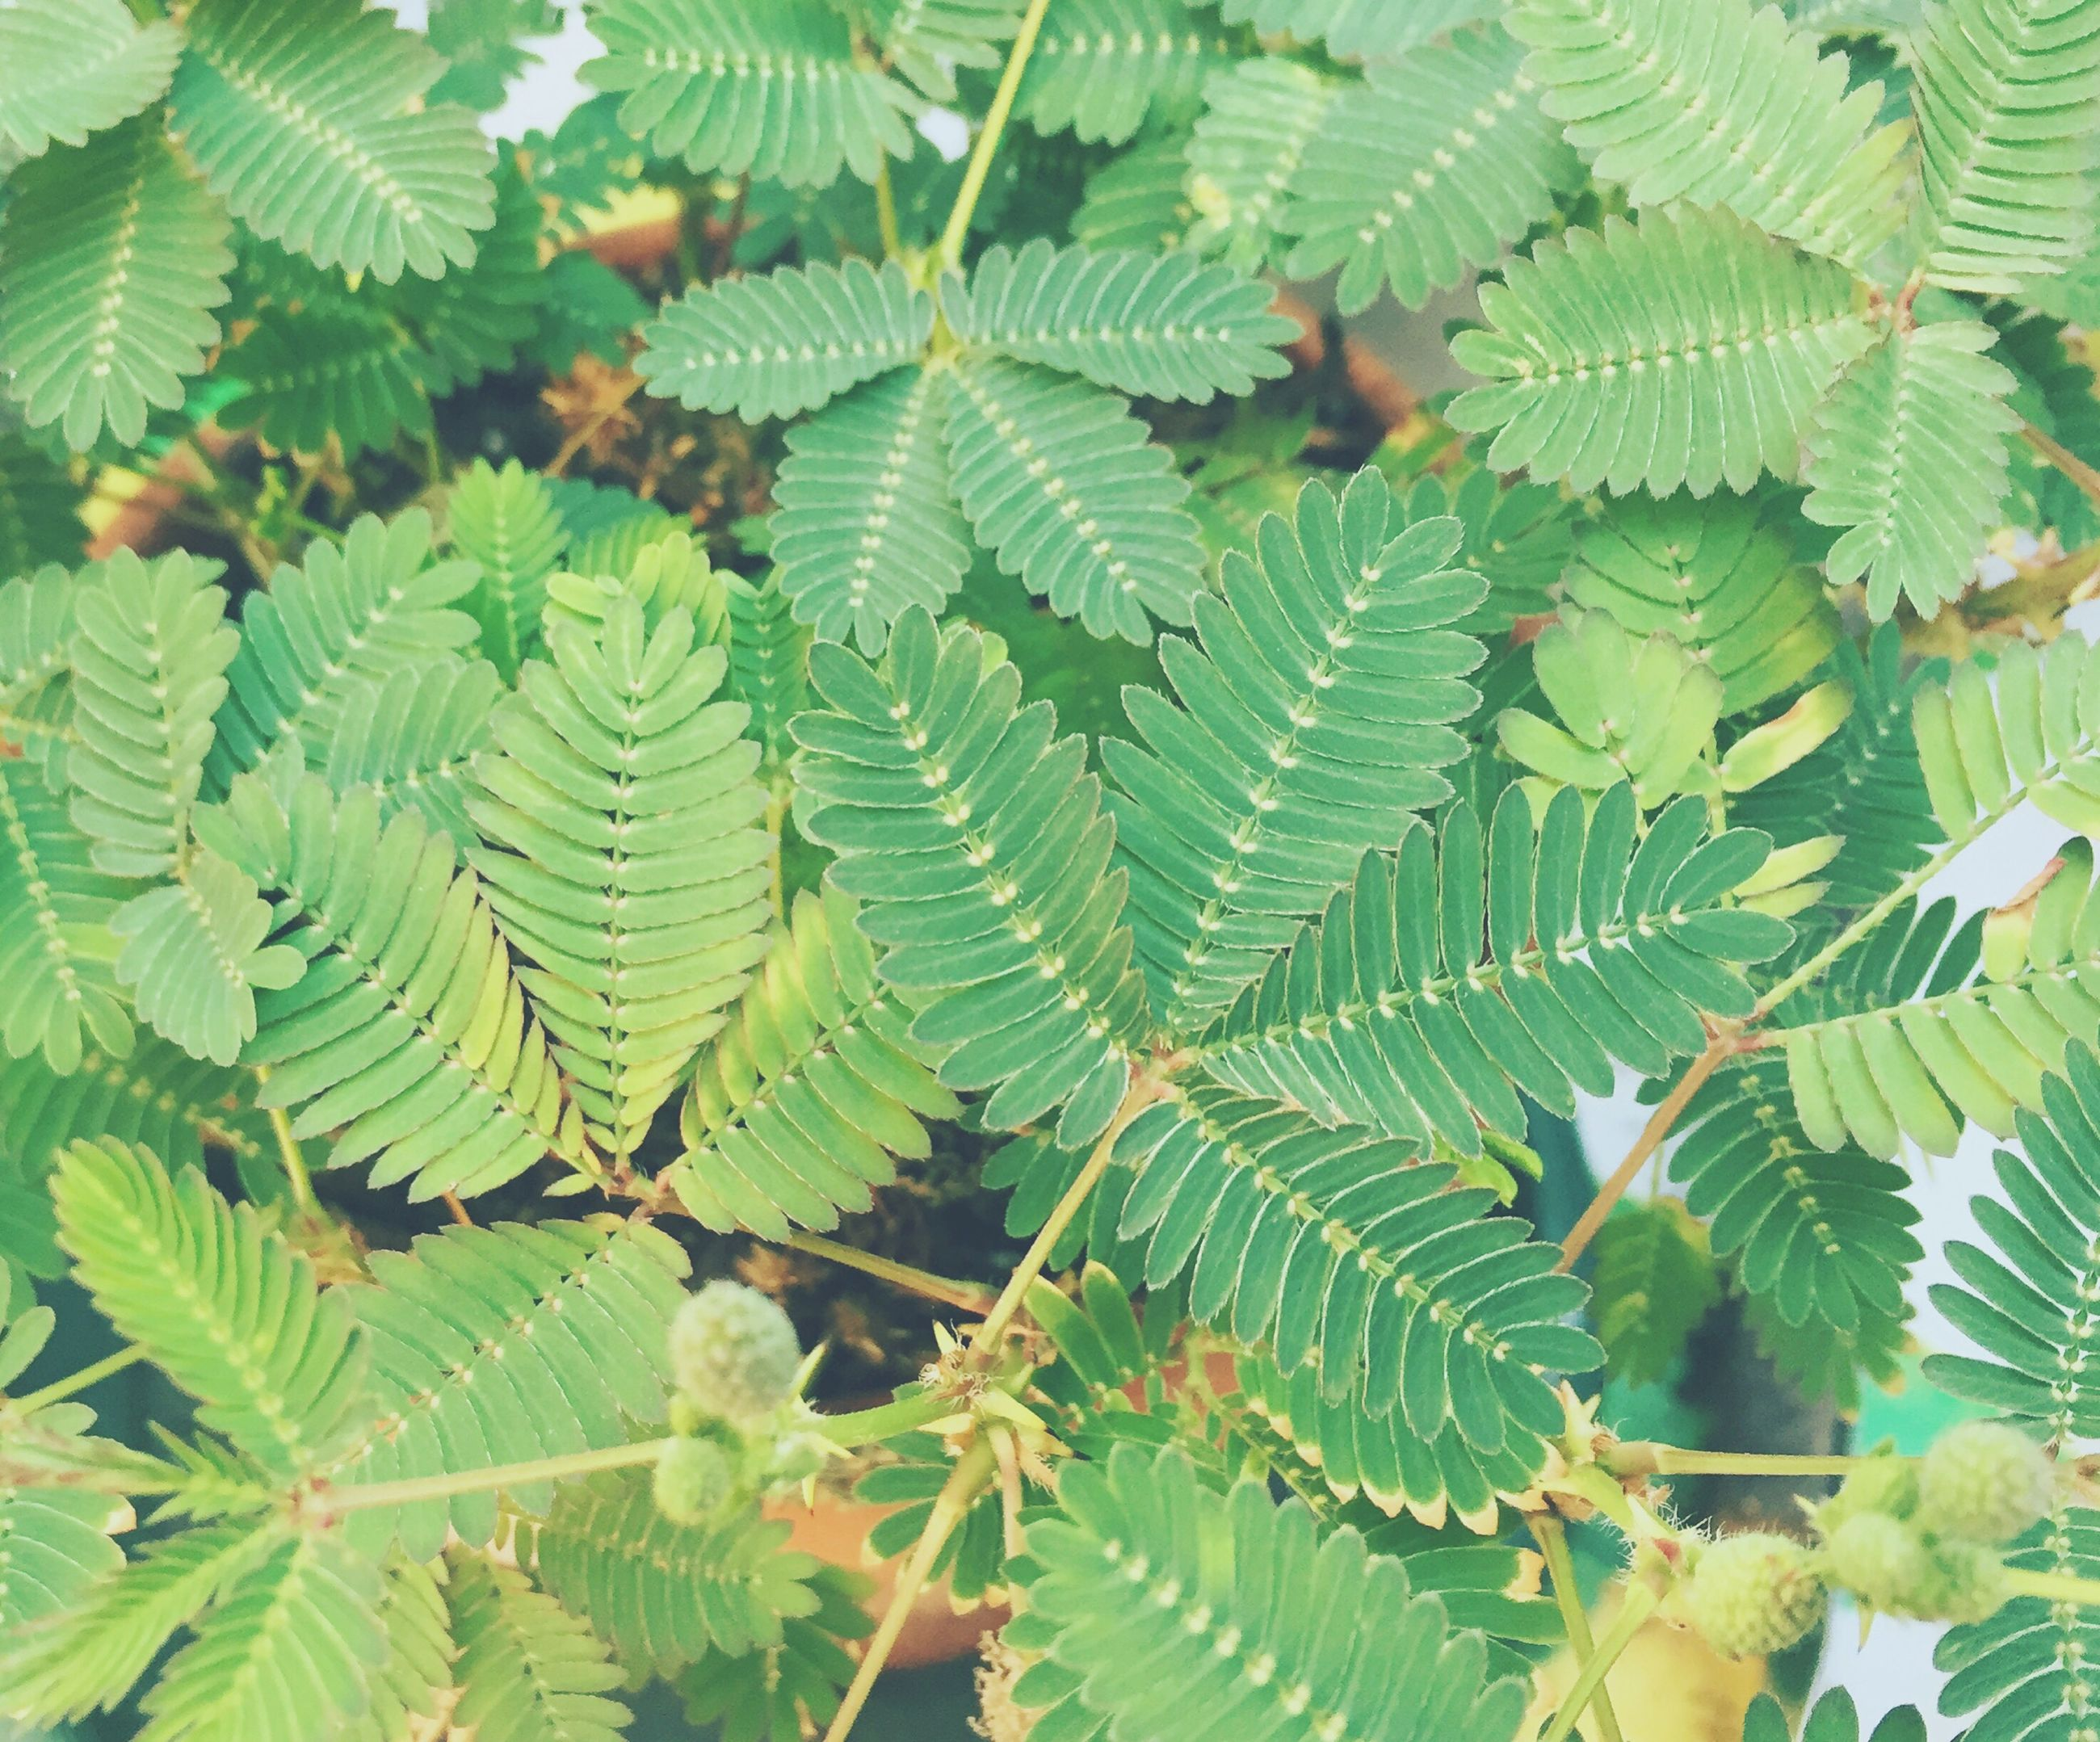 leaf, growth, nature, green color, beauty in nature, plant, close-up, no people, fragility, outdoors, tree, day, freshness